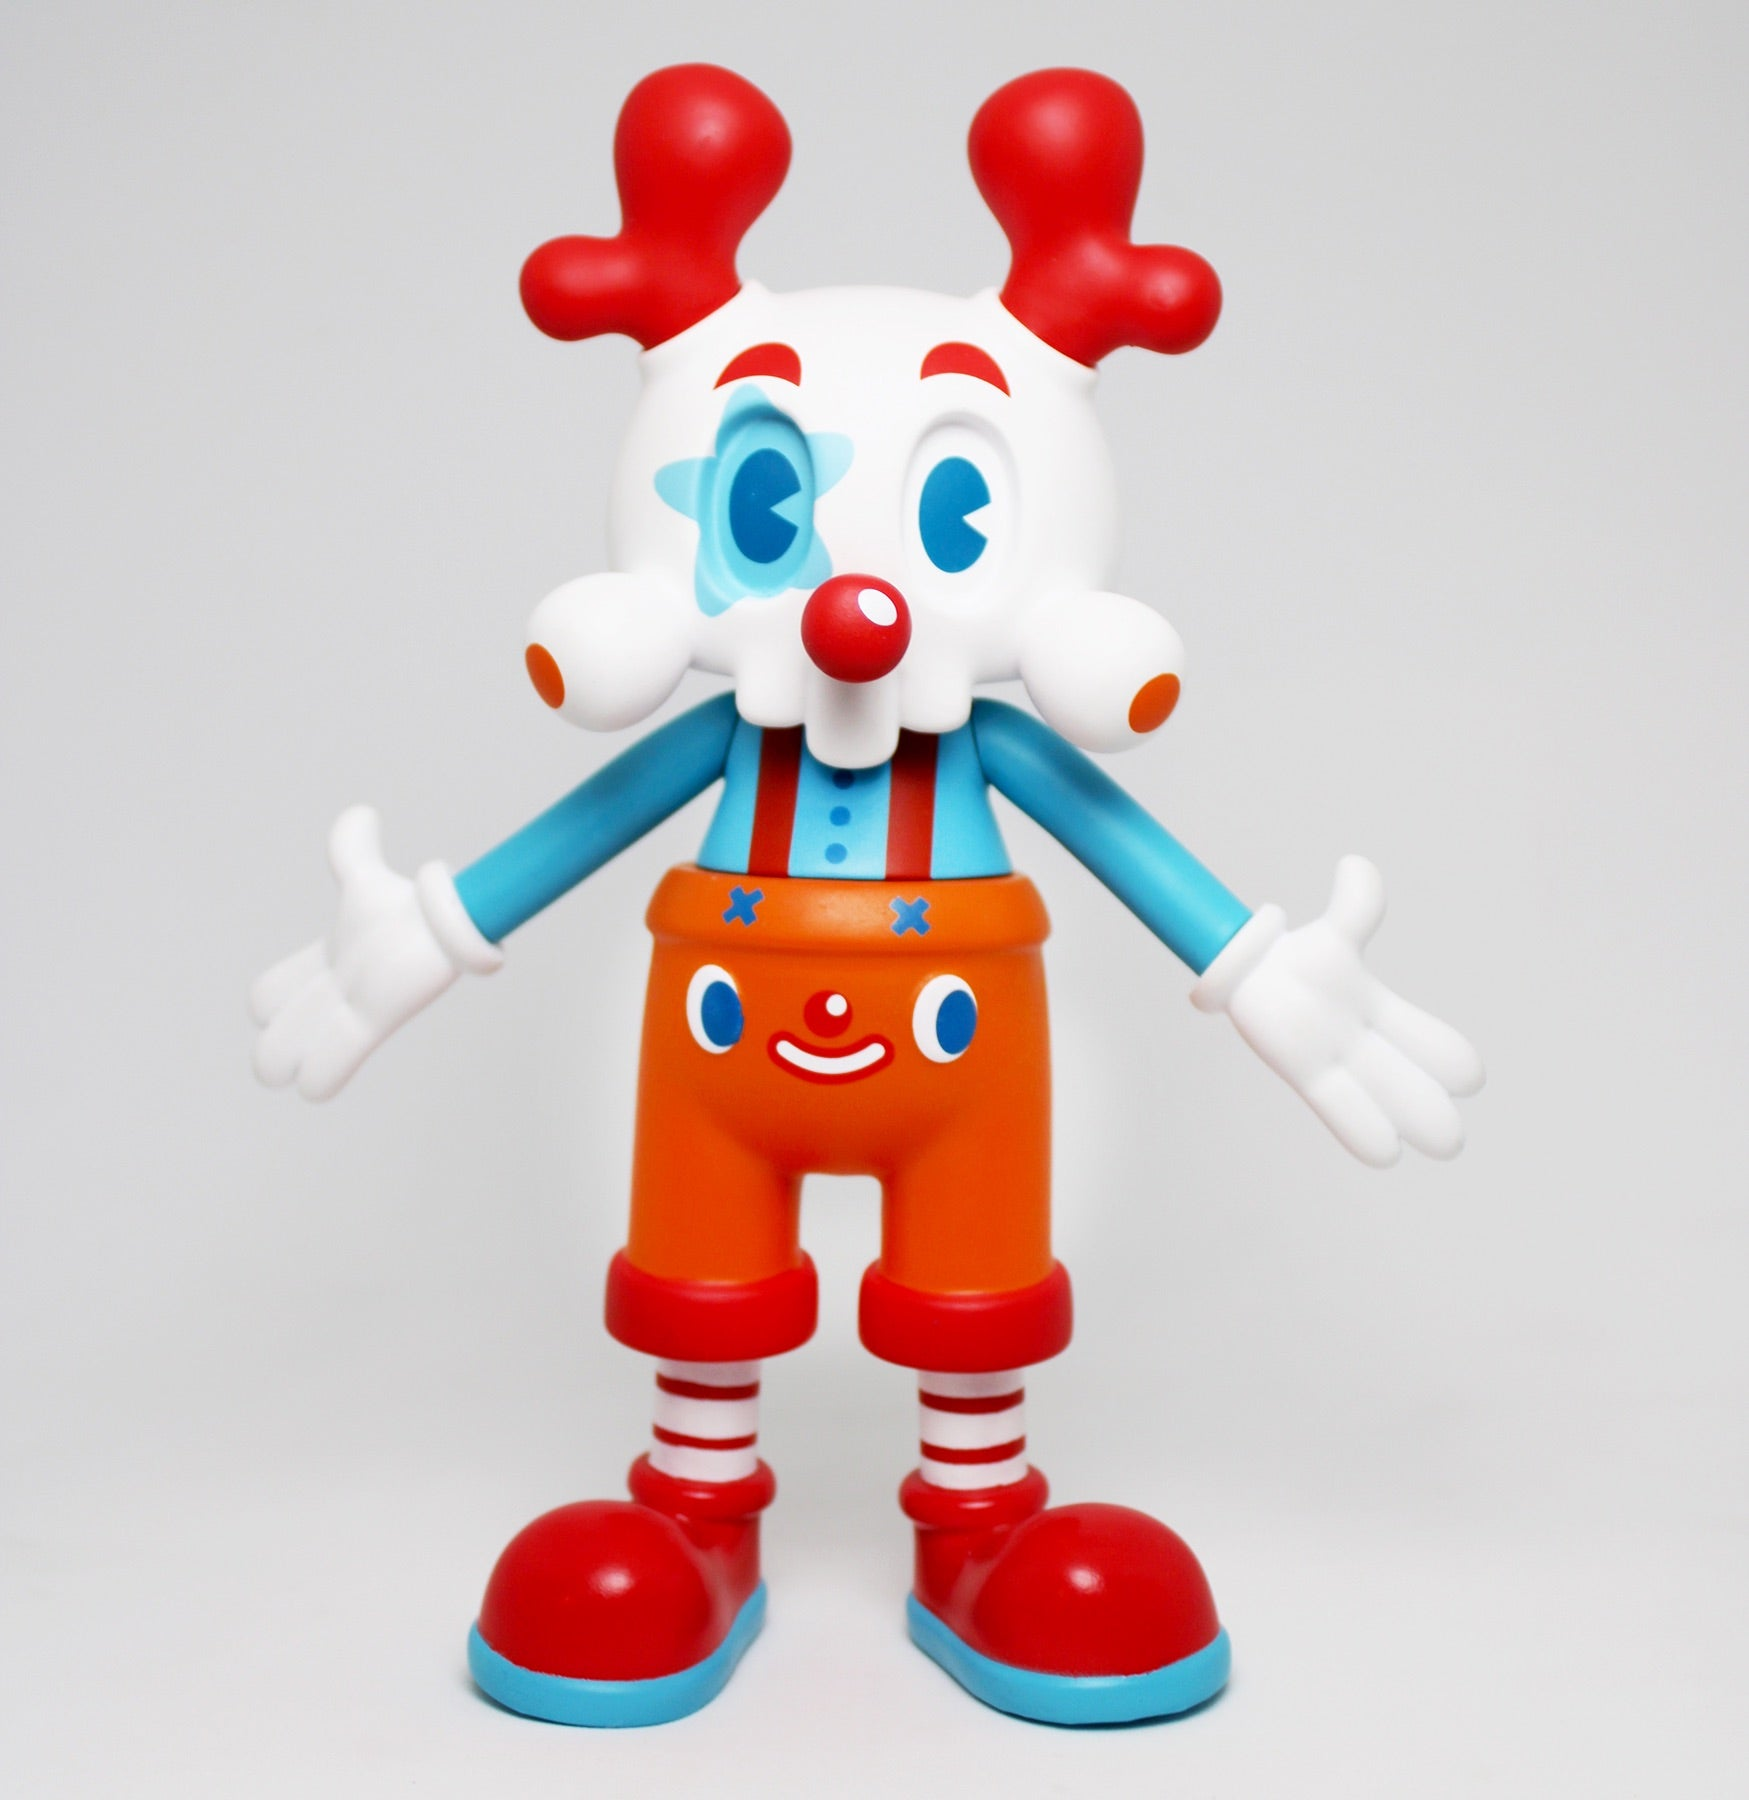 Kranyus Klown edition by Kong Andri x Theodoru